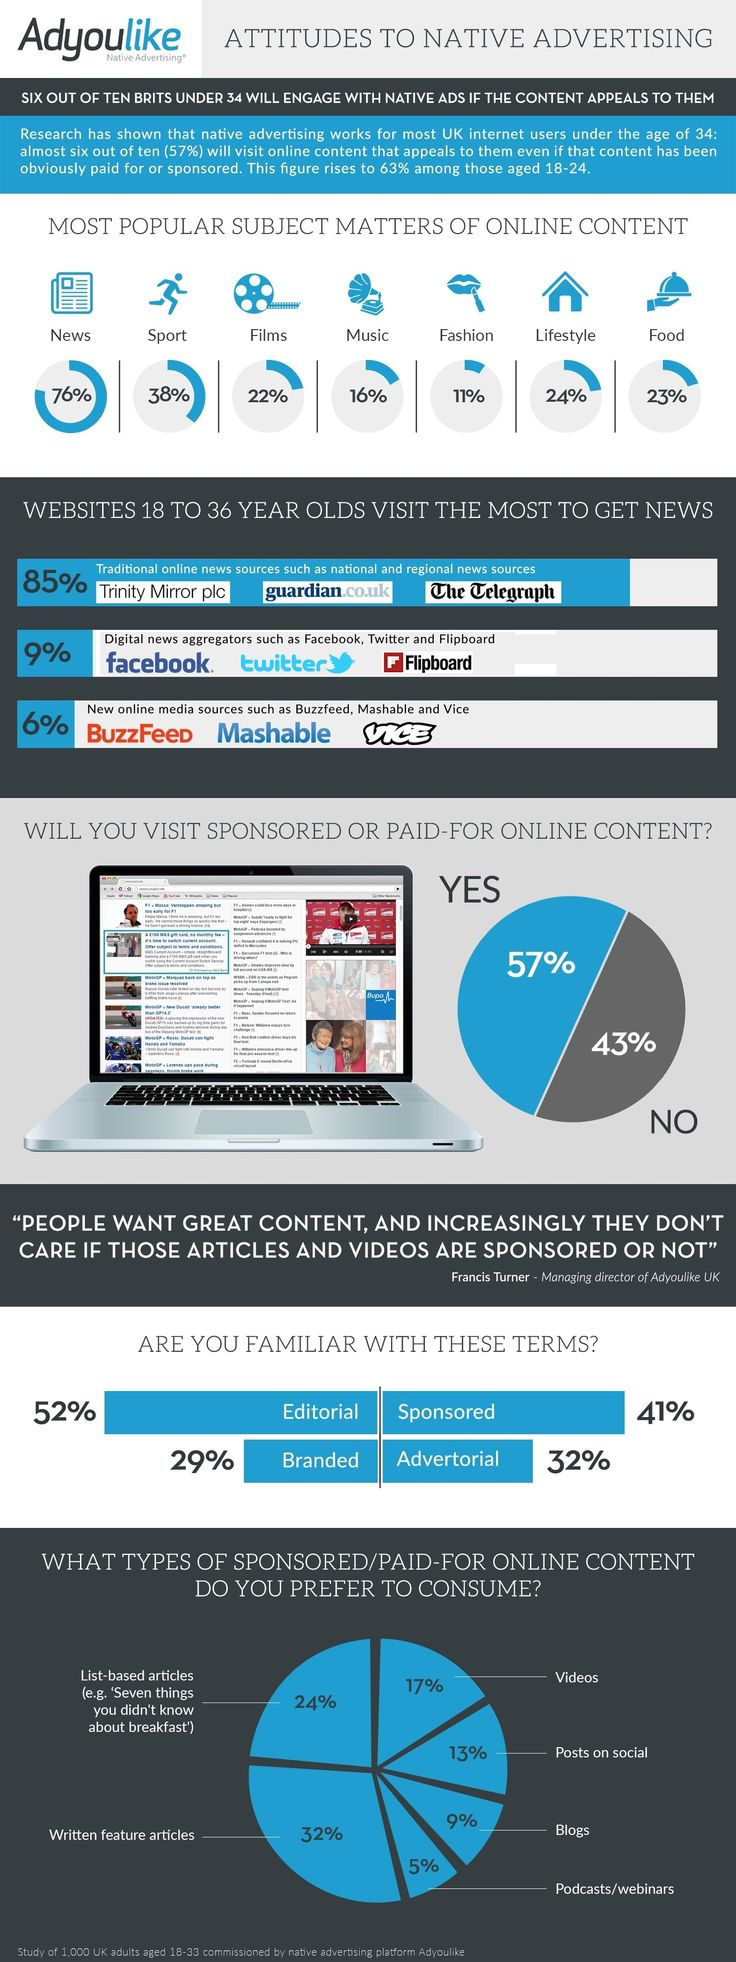 What Millennials Want From Native Ad Content #infographic #NativeAdvertising